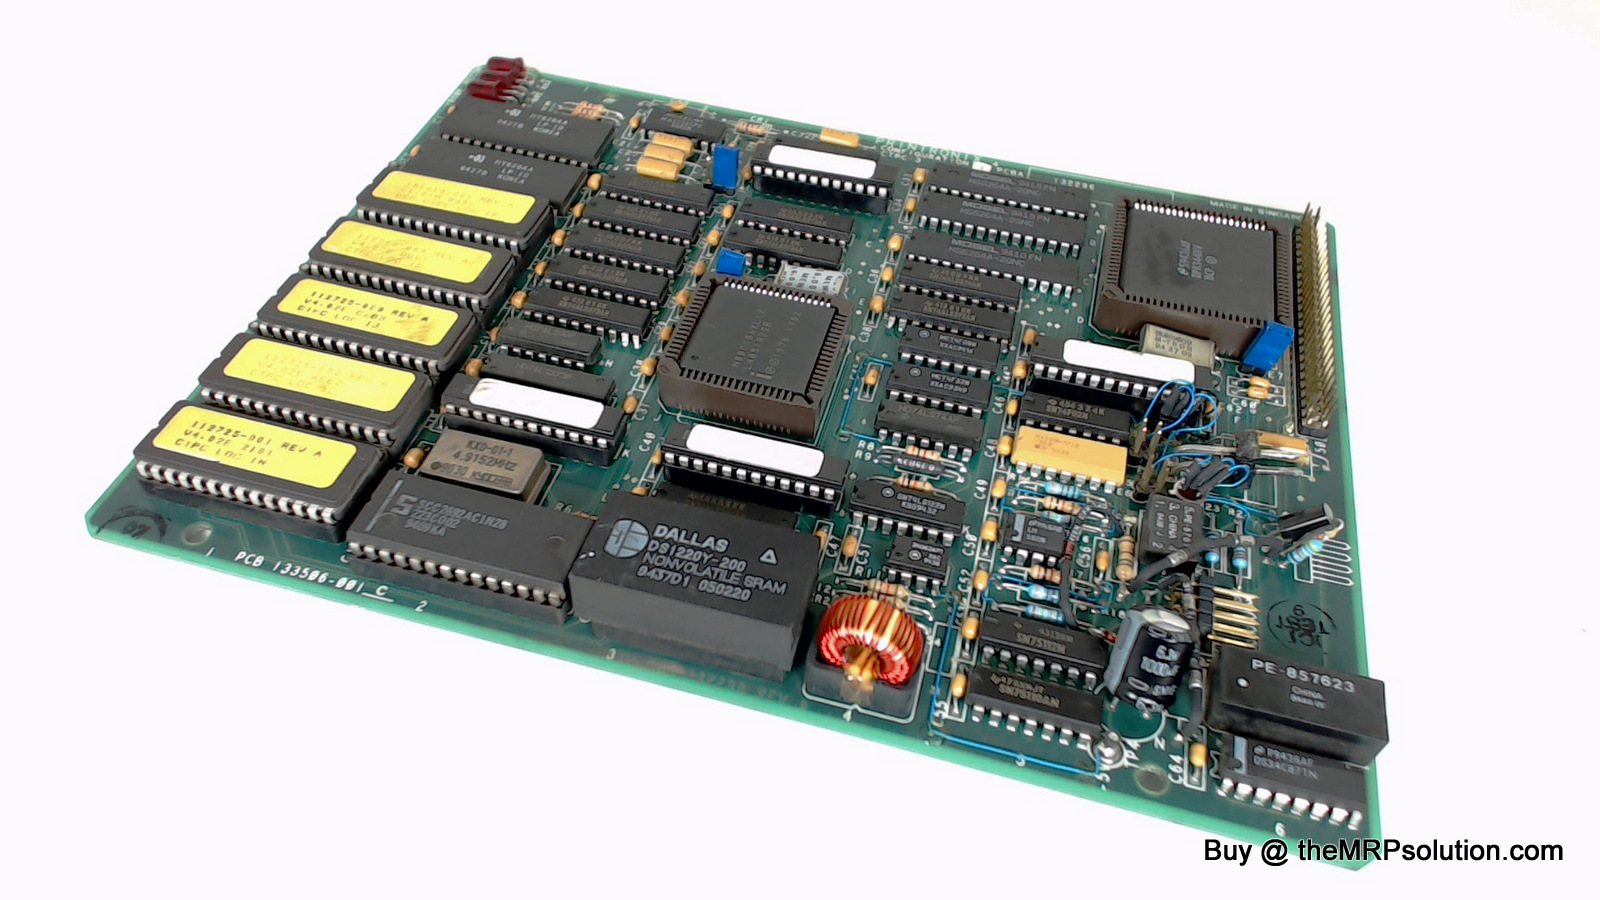 PRINTRONIX 134788-001 CTPC INTERFACE BOARD, P4280 Refurbished